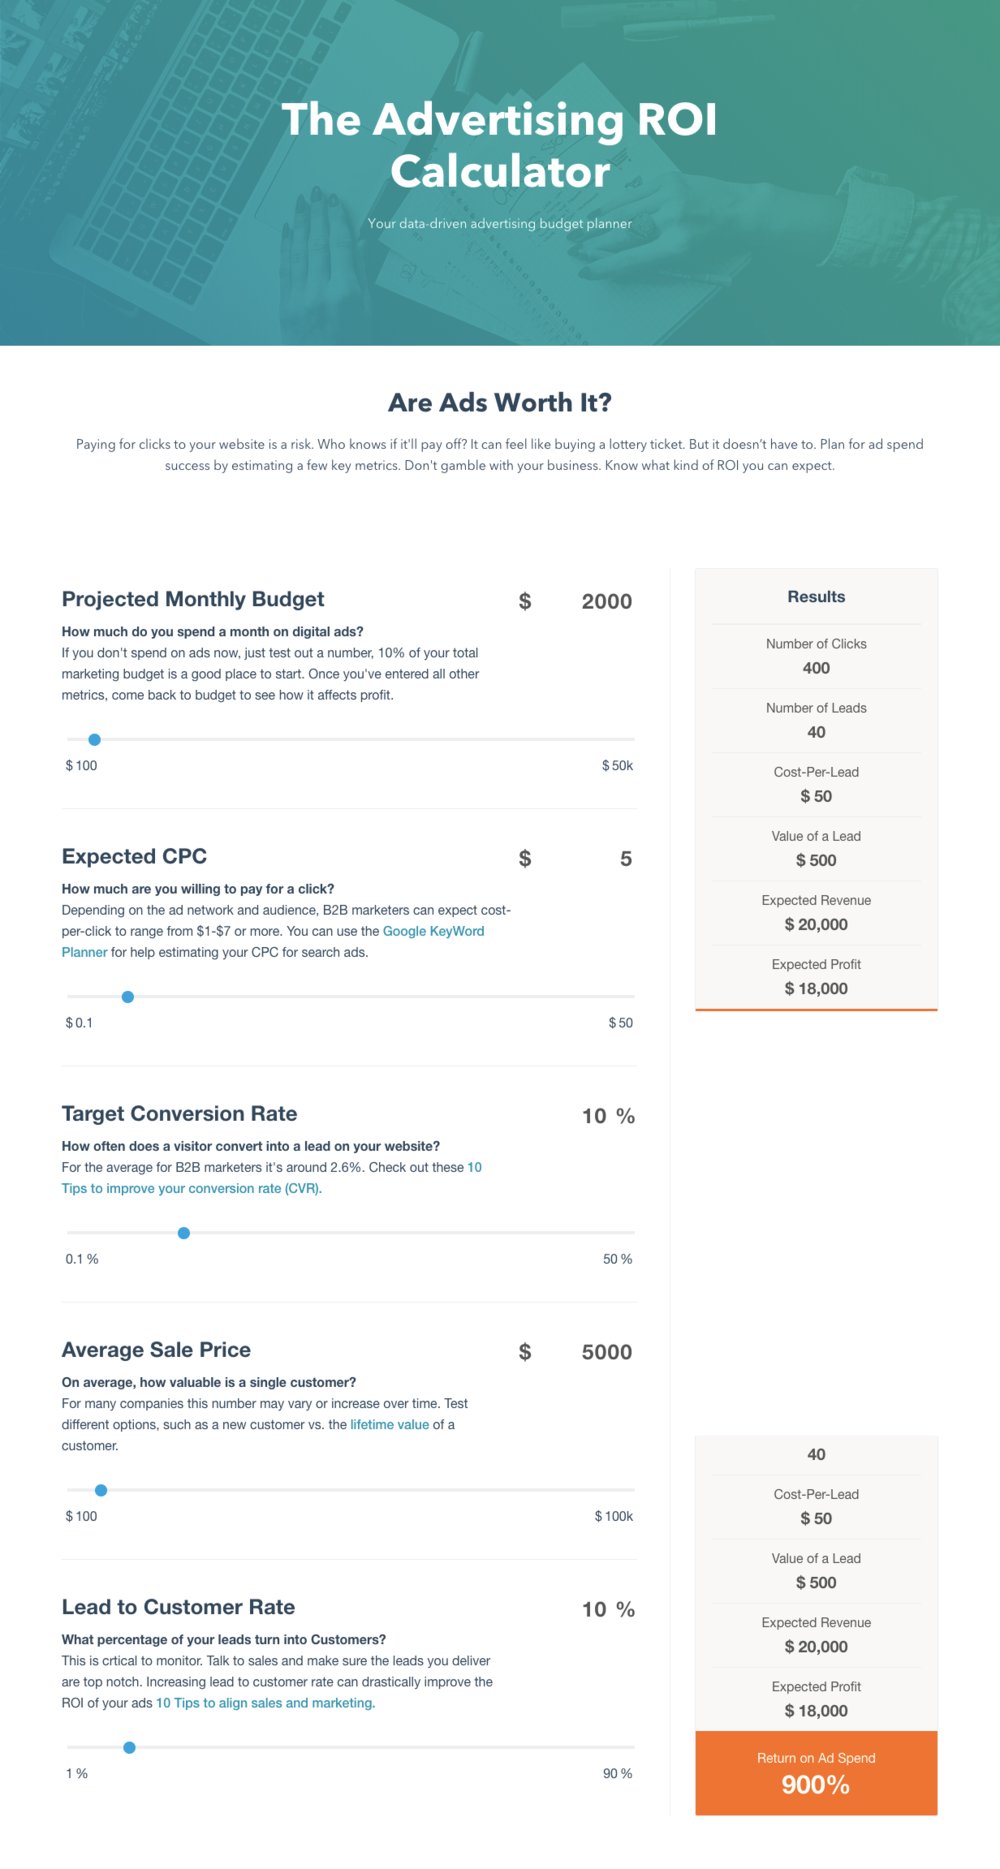 screencapture-hubspot-ads-calculator-2019-02-17-12_03_12.png